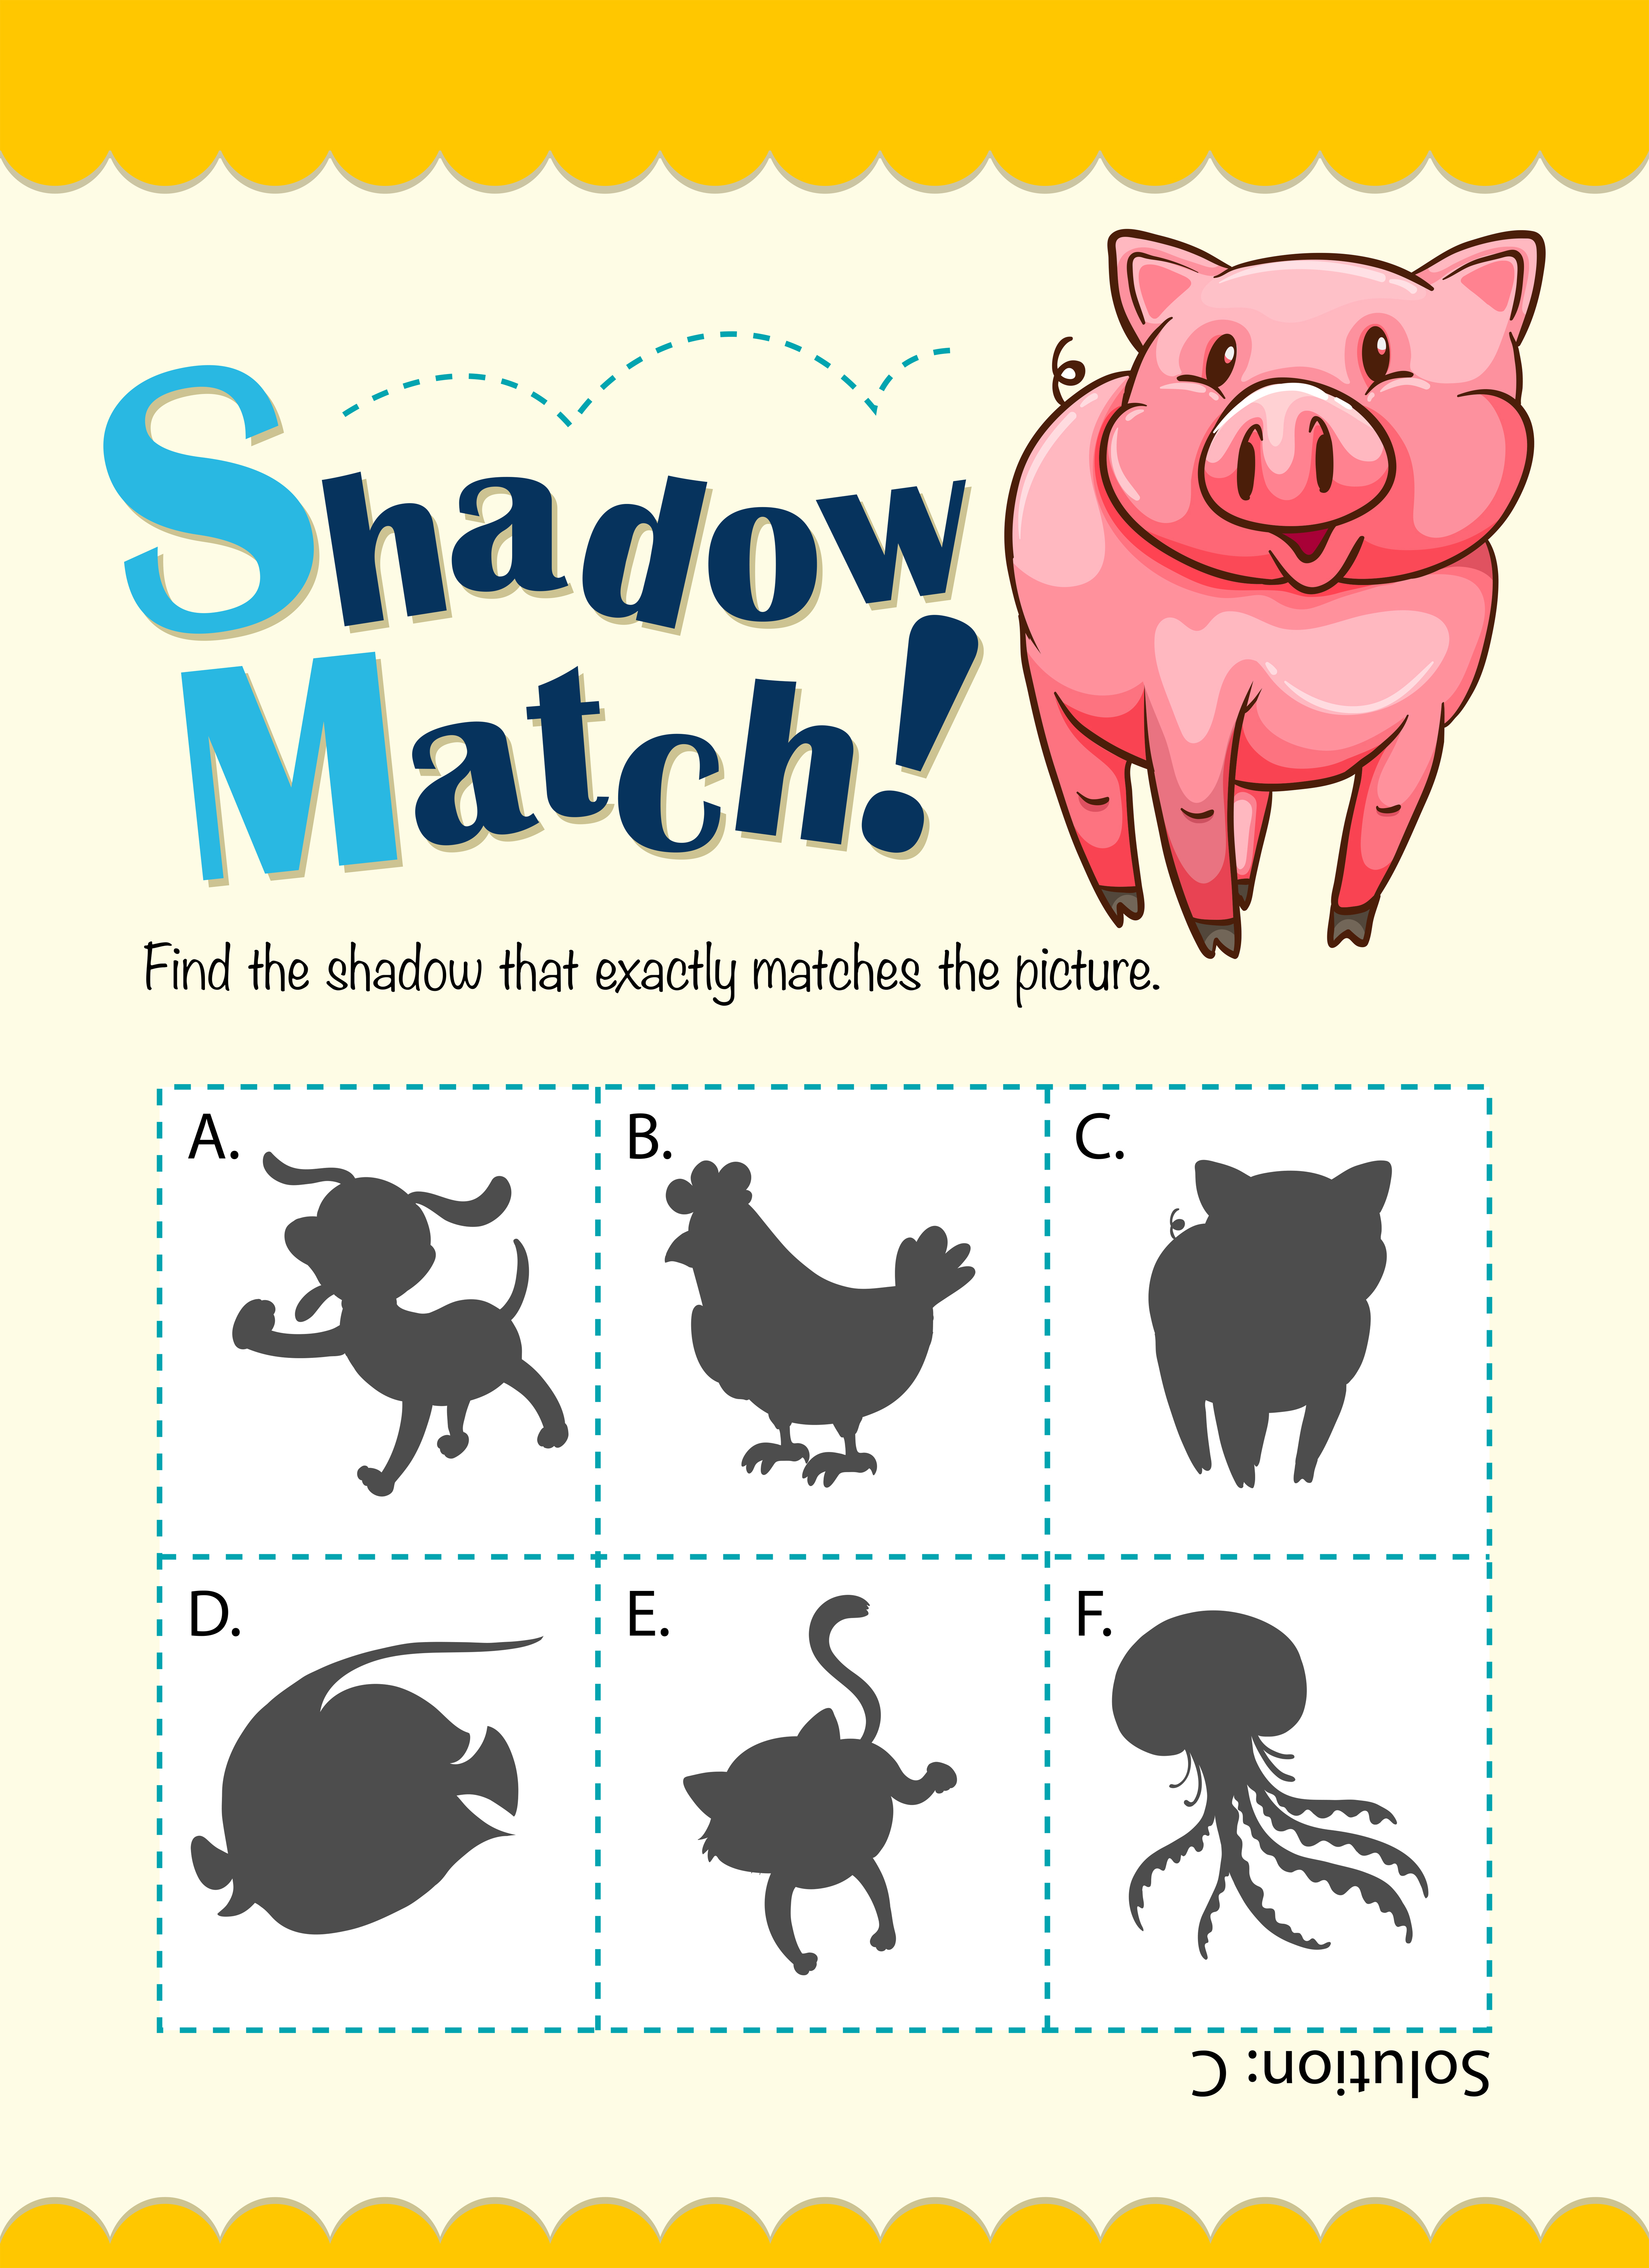 Game Template With Shadow Matching Pig